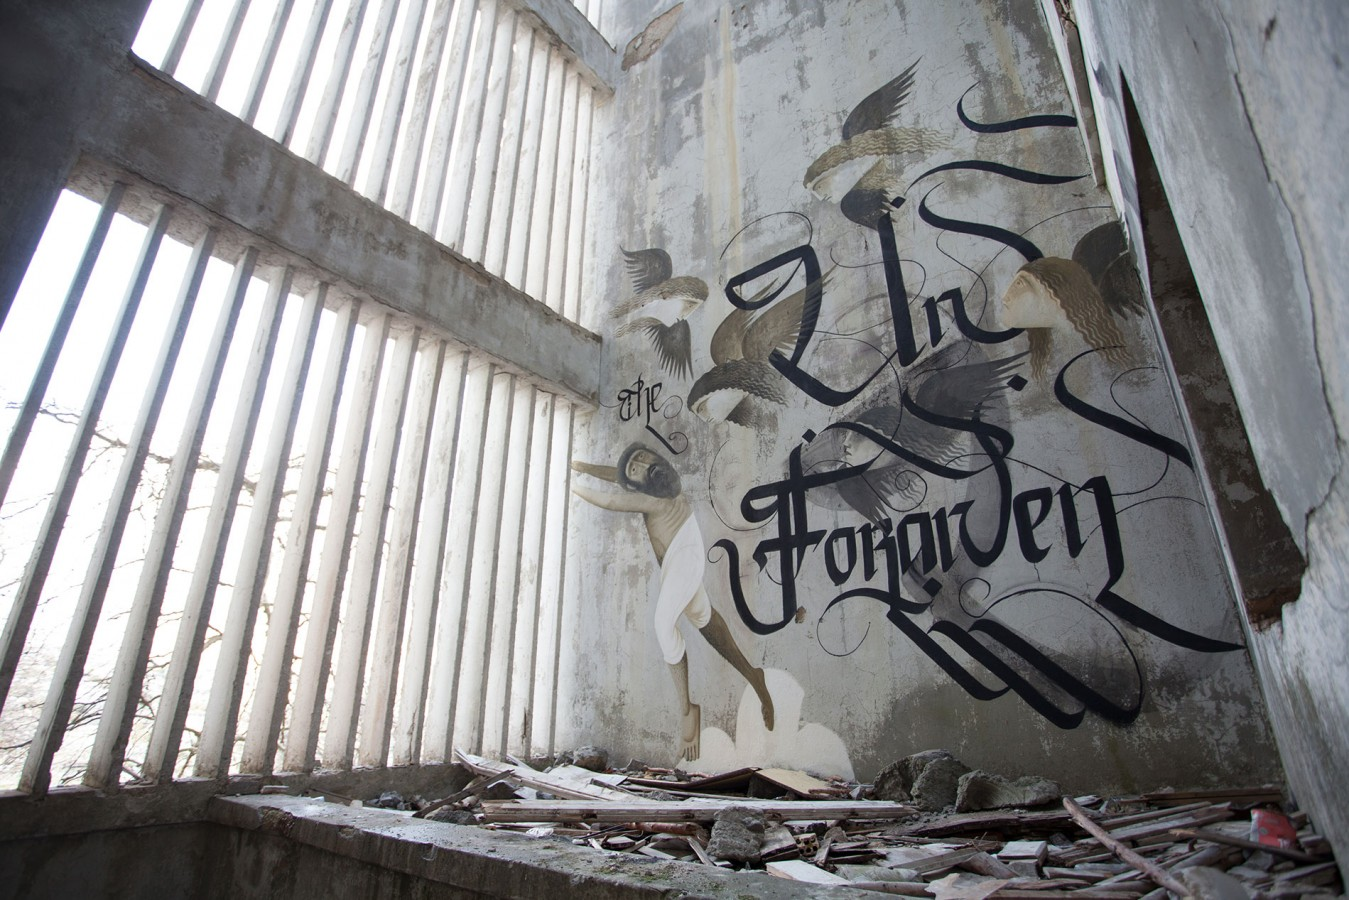 simon-silaidis-fikos-antonios-the-unforgiven-new-mural-11